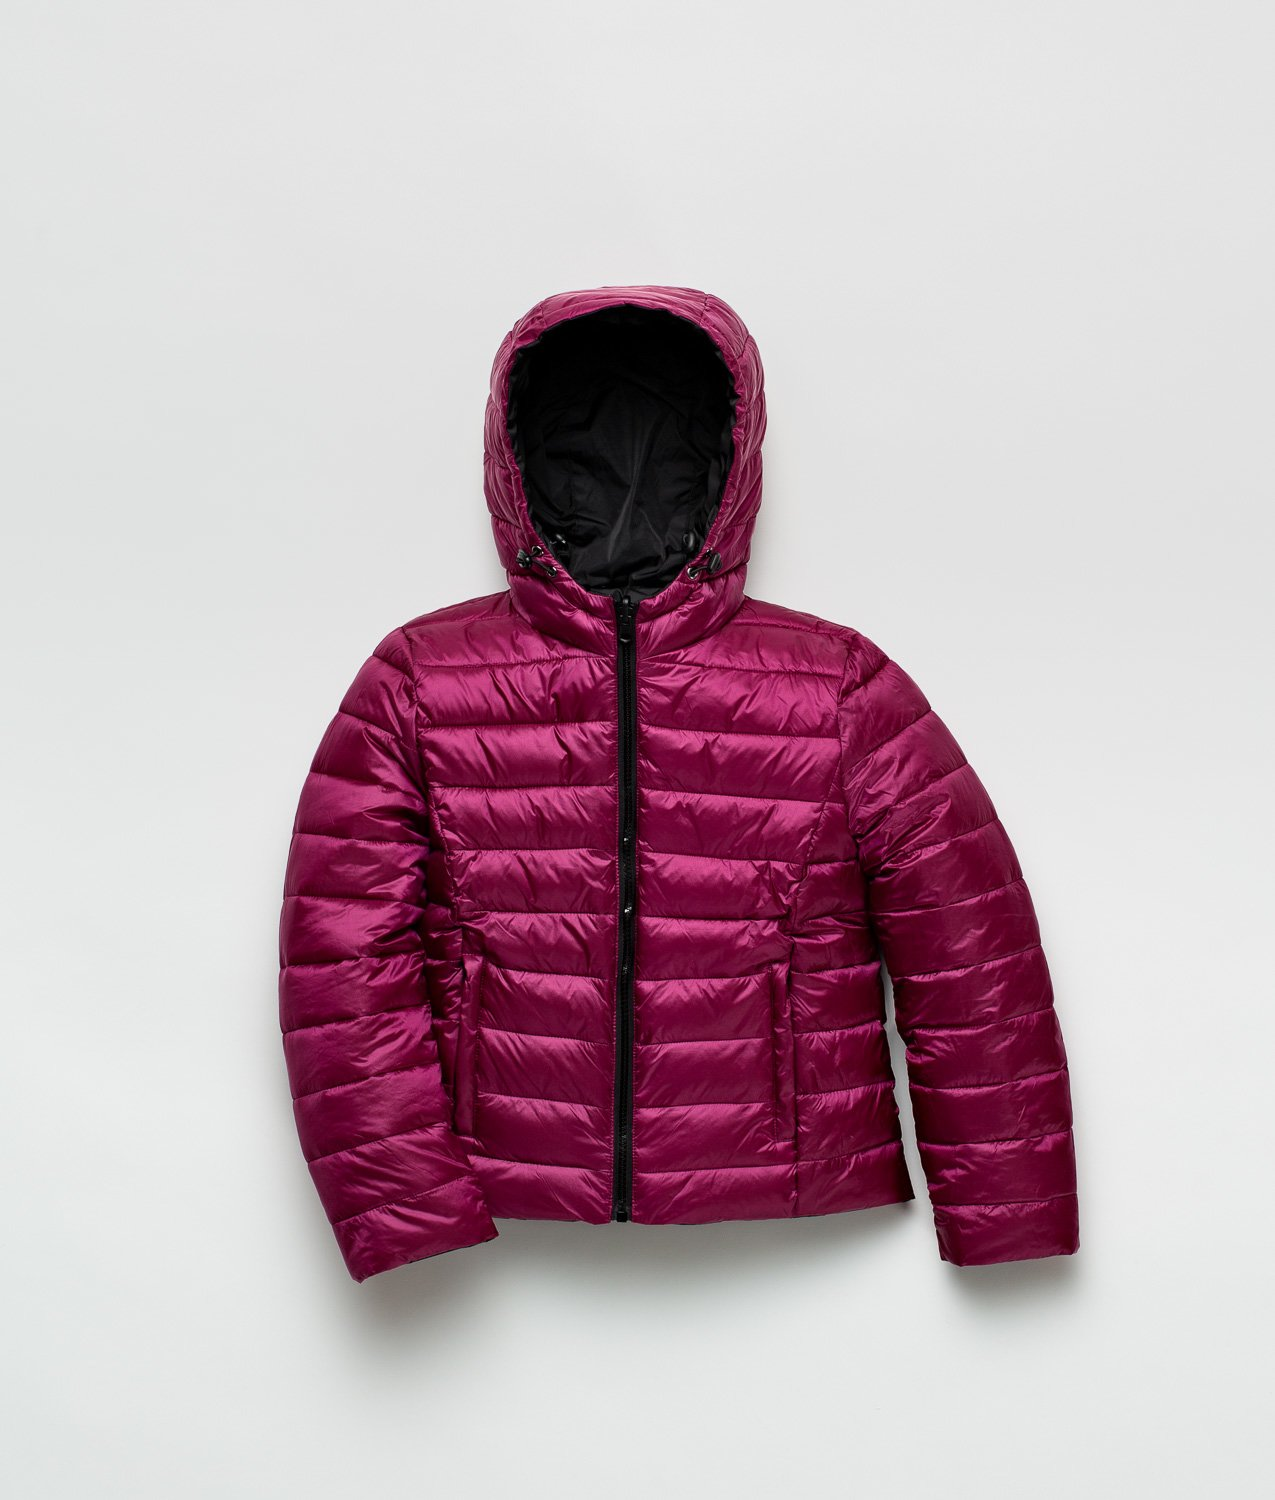 JR LONG DORIS JACKET